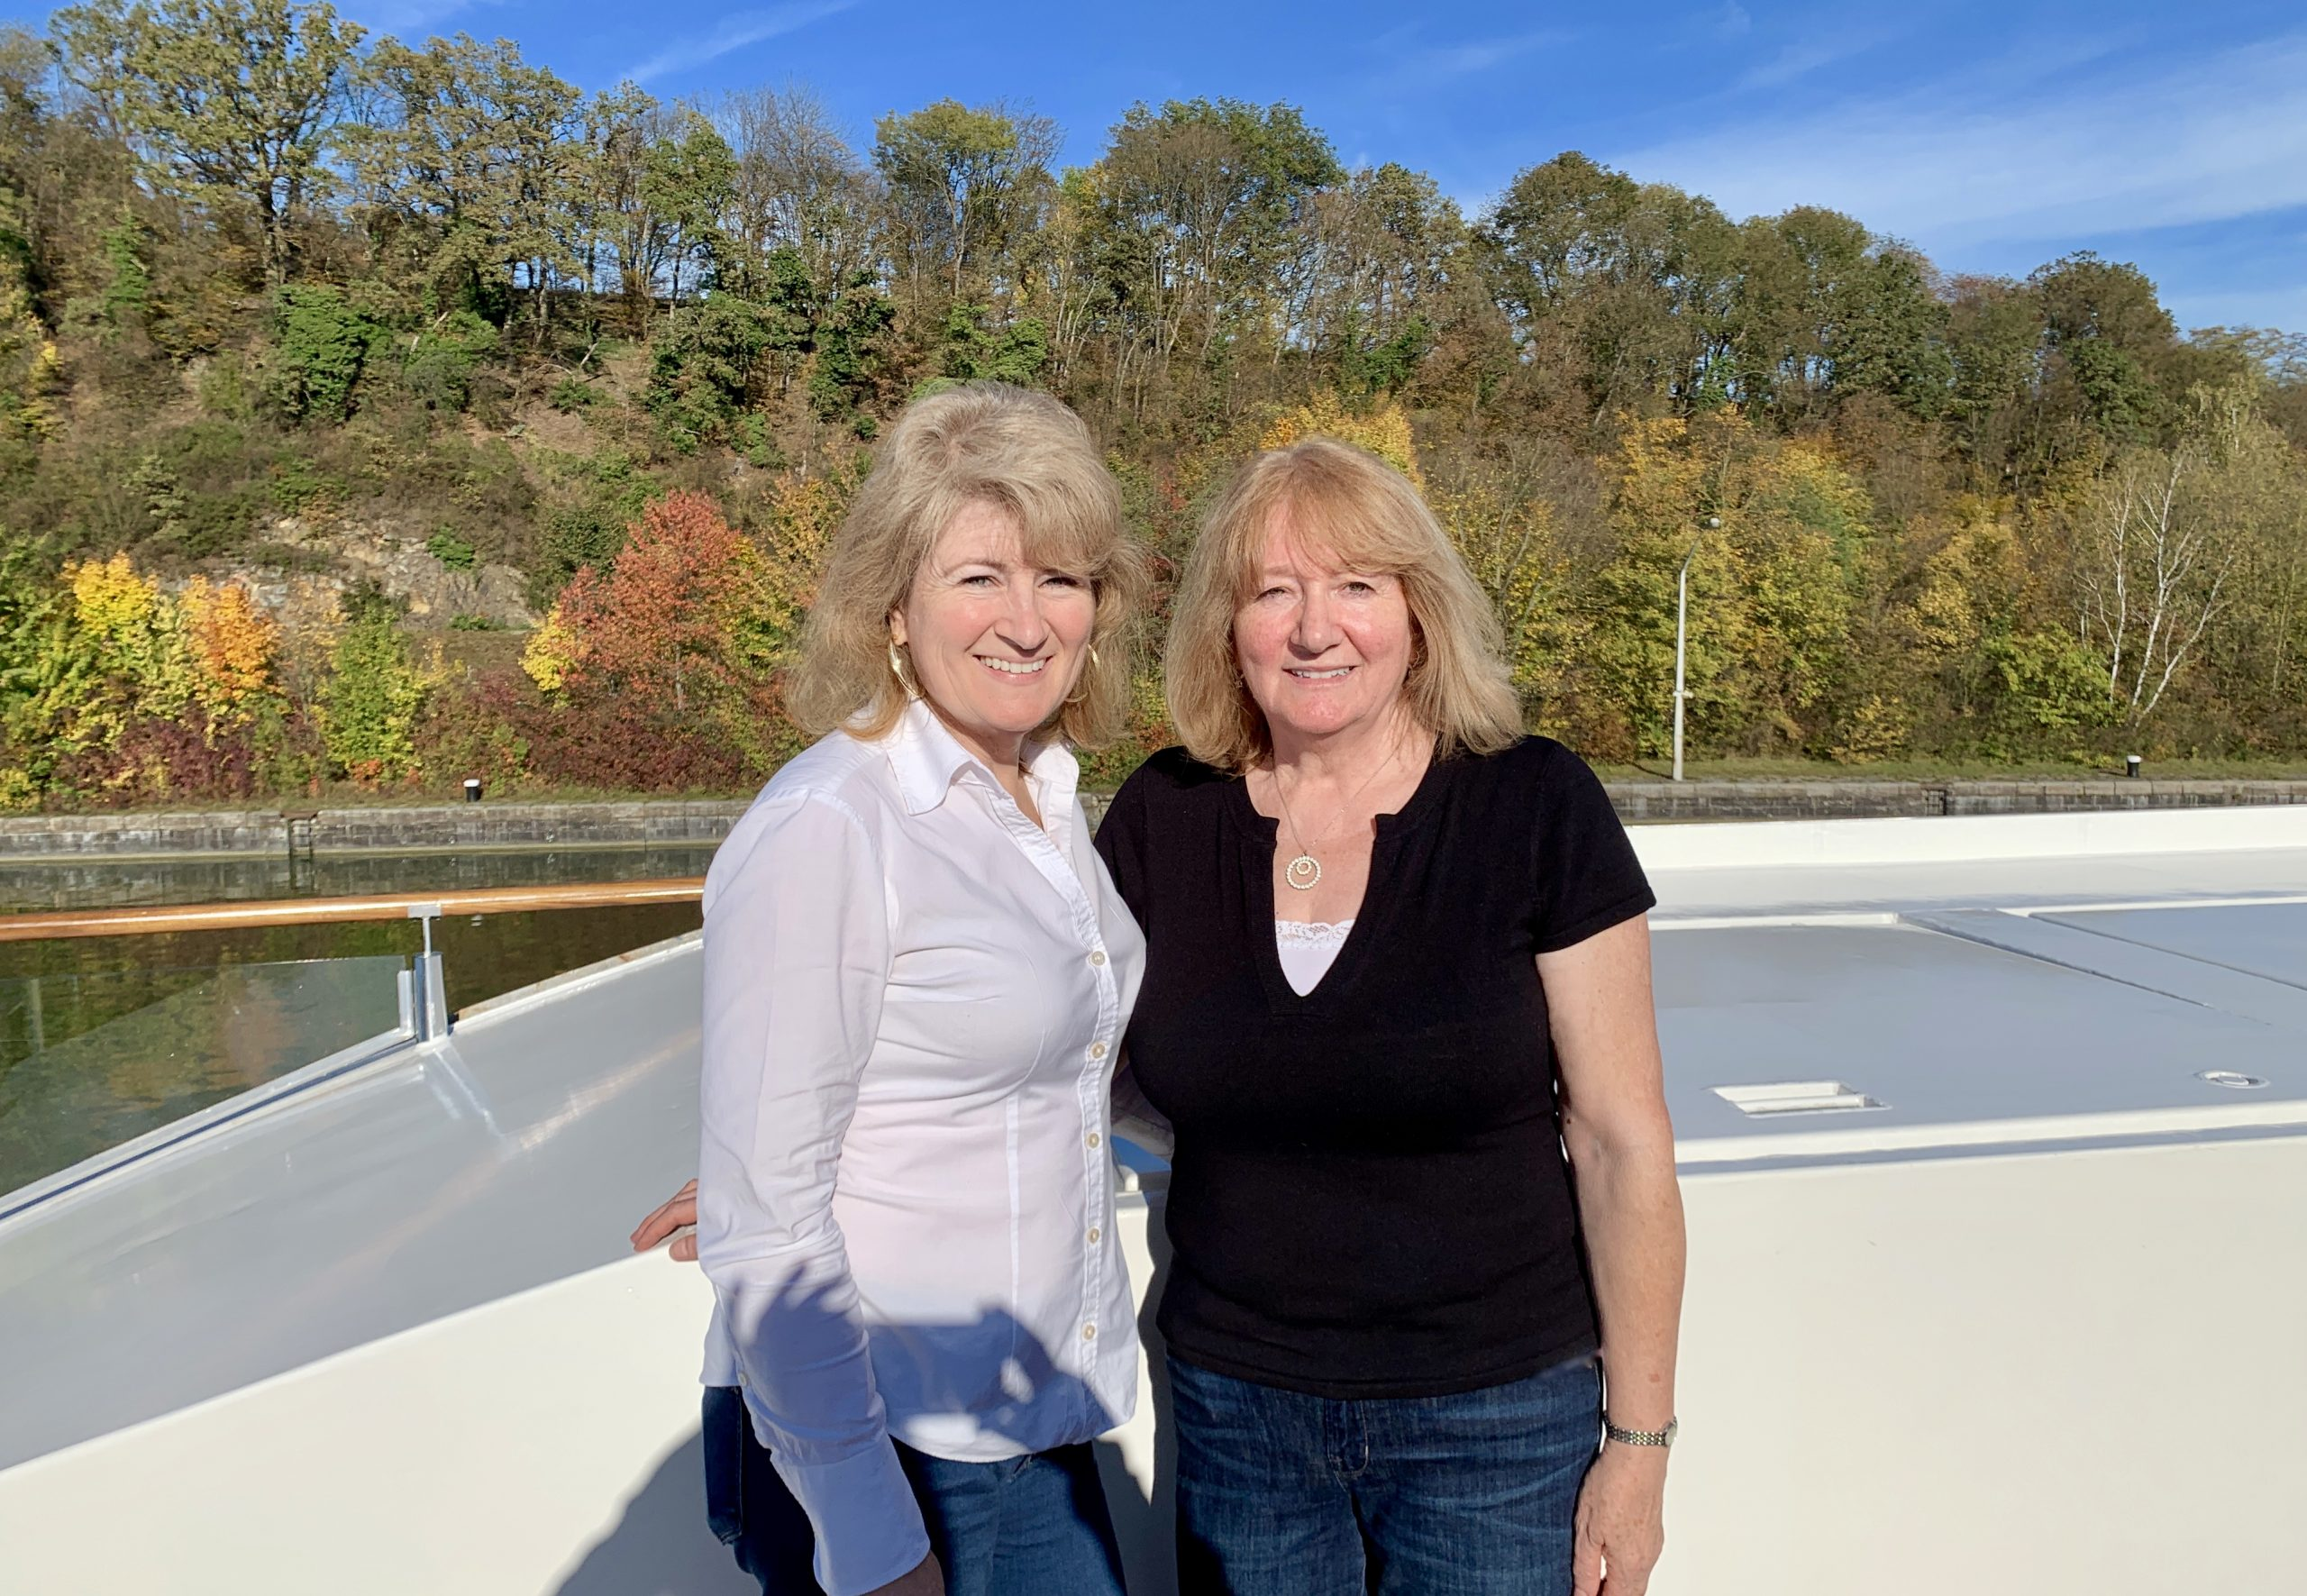 Christina and her mother on the AmaMagna